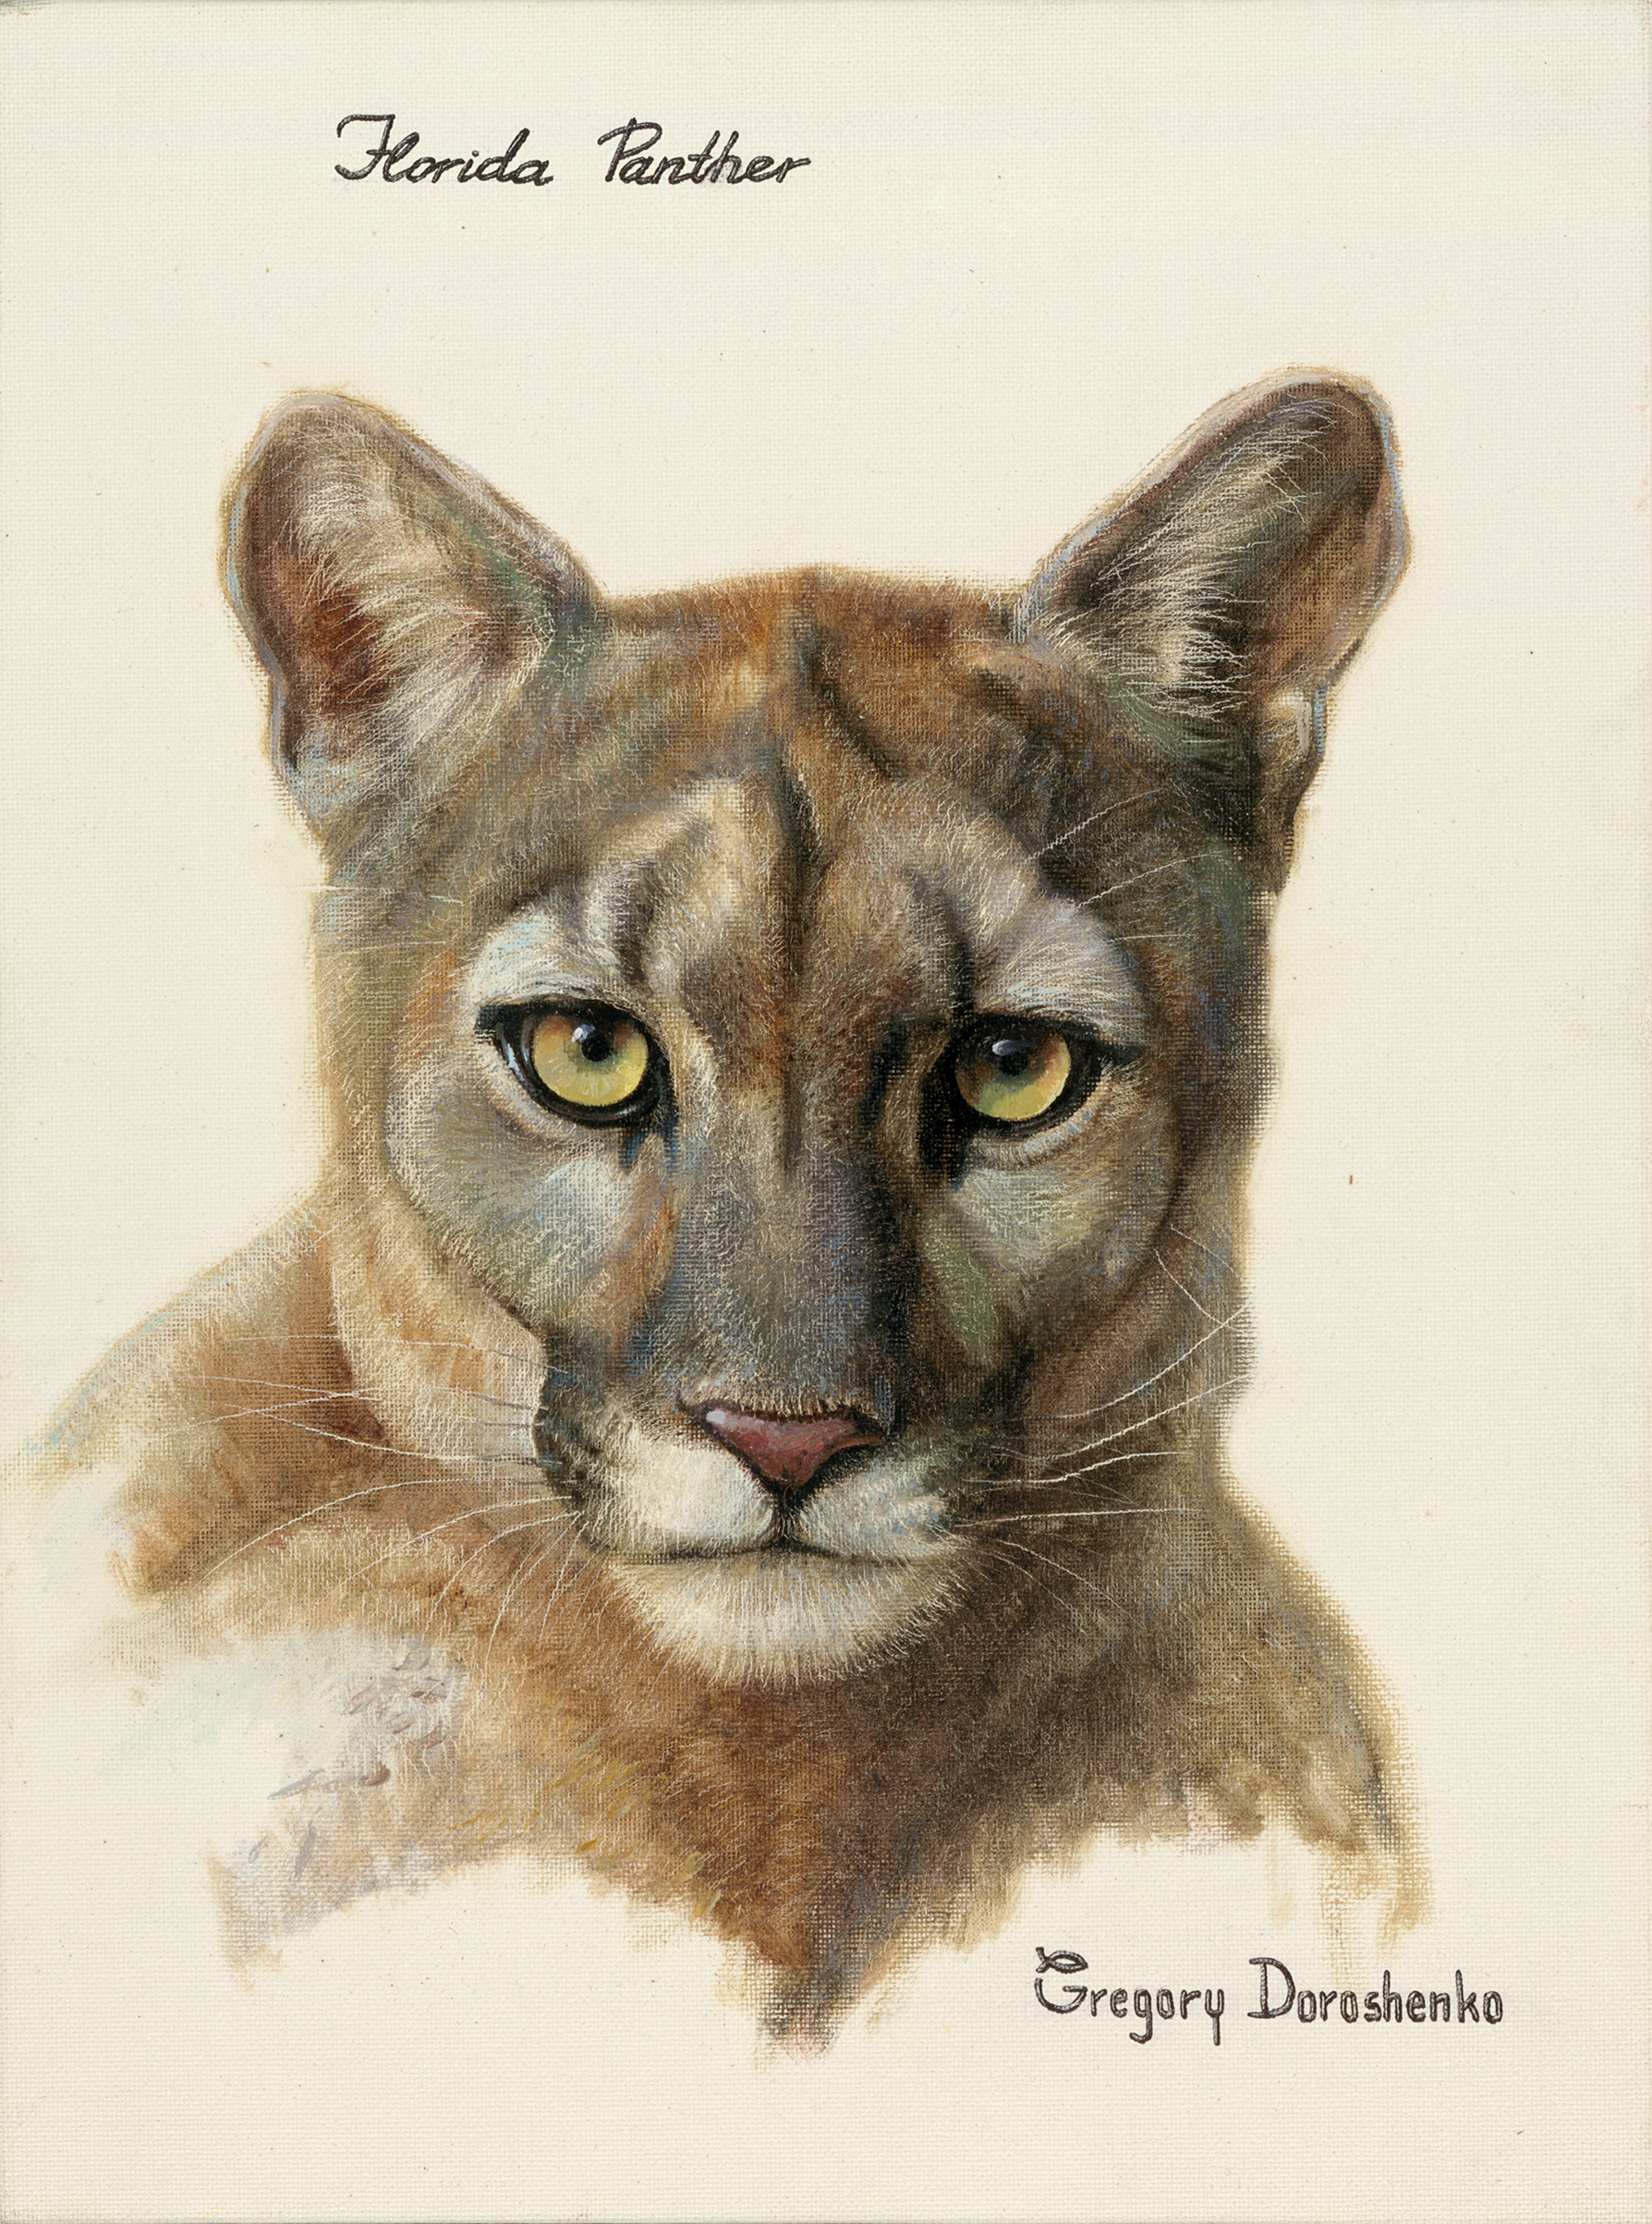 Florida Panther. Oil on Canvas. To buy a print, click below